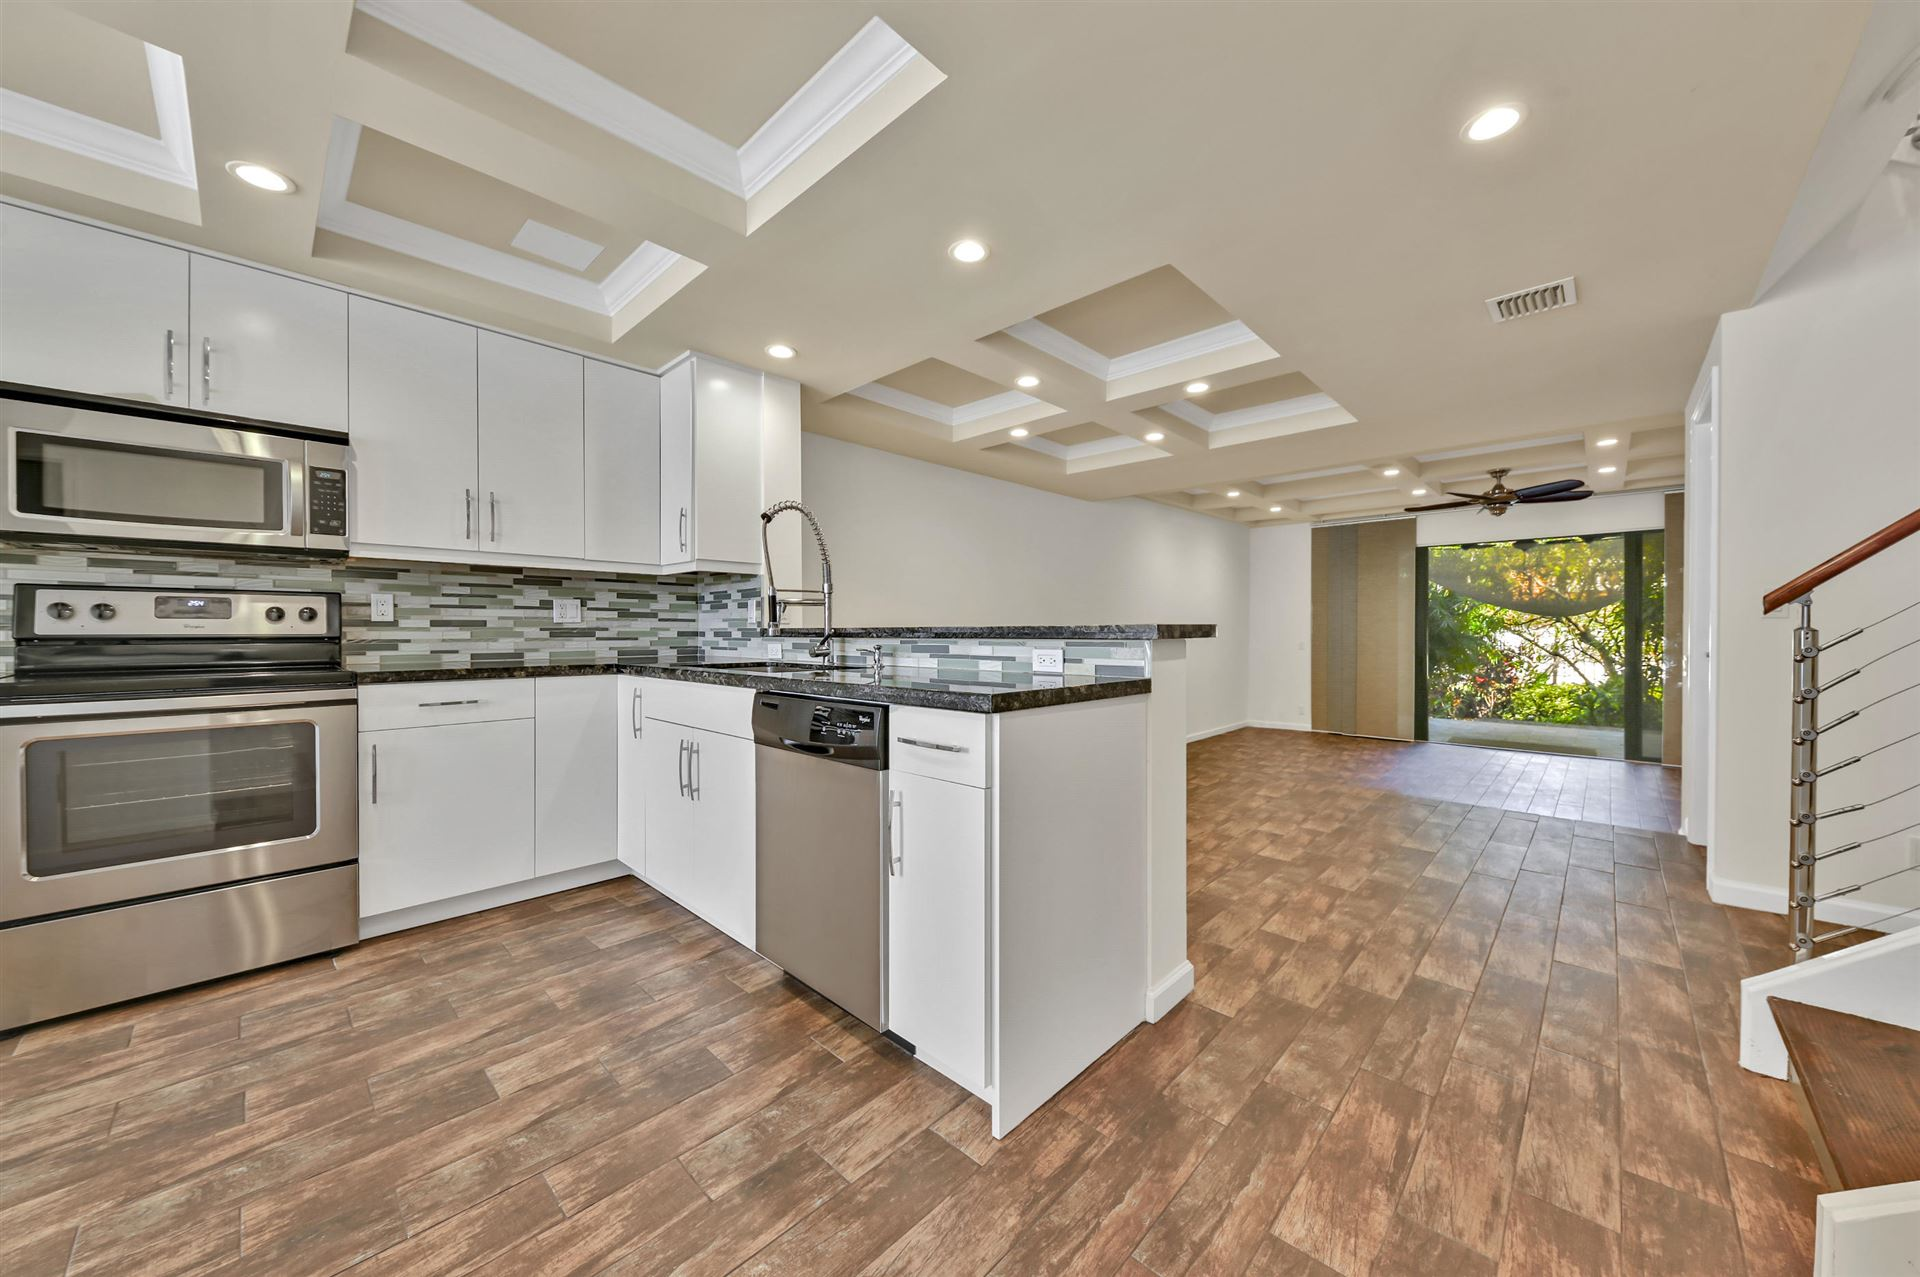 620 NE 20th Lane, Boynton Beach, FL 33435 - #: RX-10673299